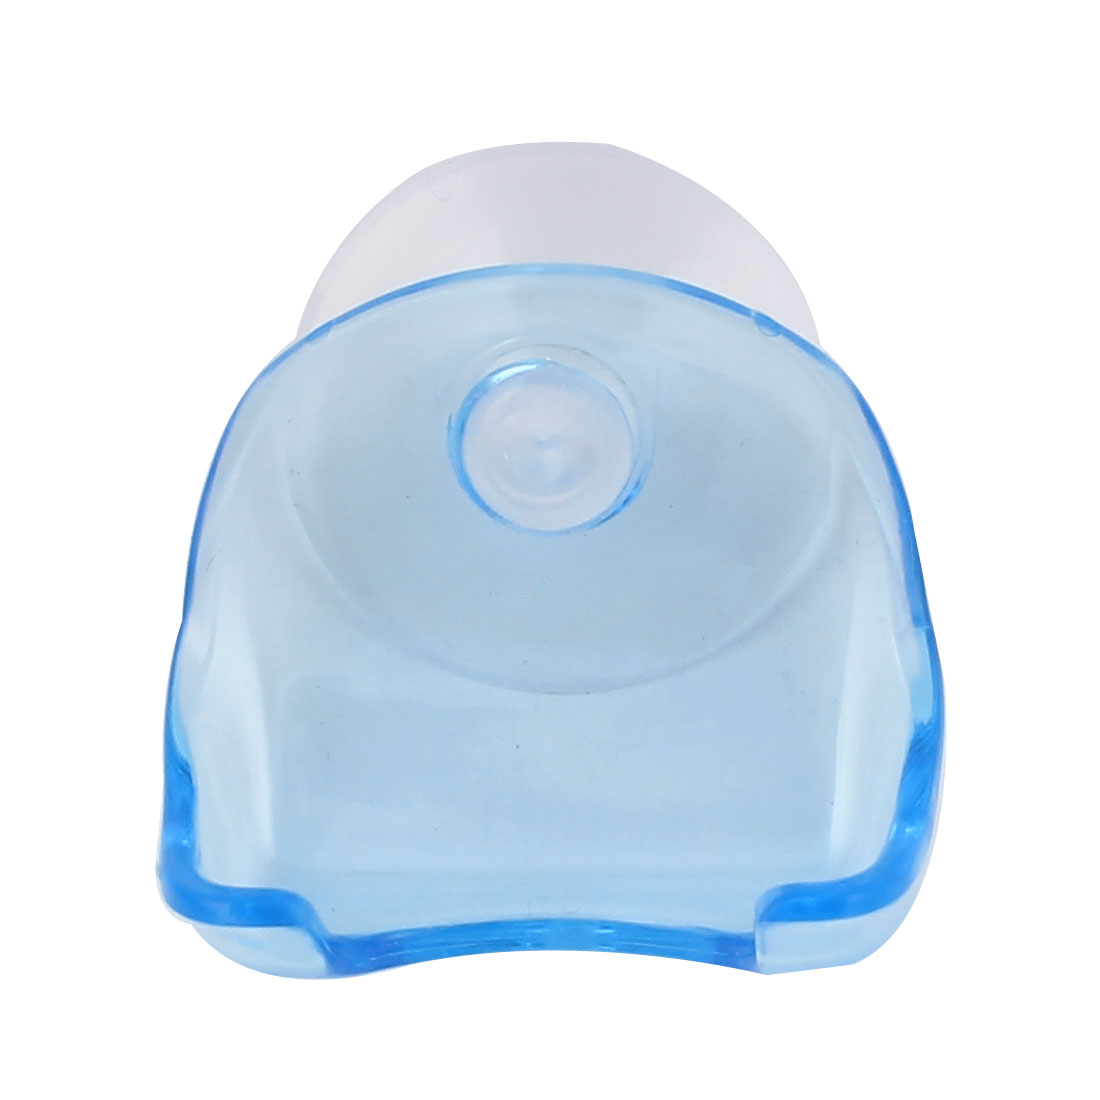 Washroom Bathroom 38mm Diameter Suction Cup Handy Shaver Razor Holder Blue